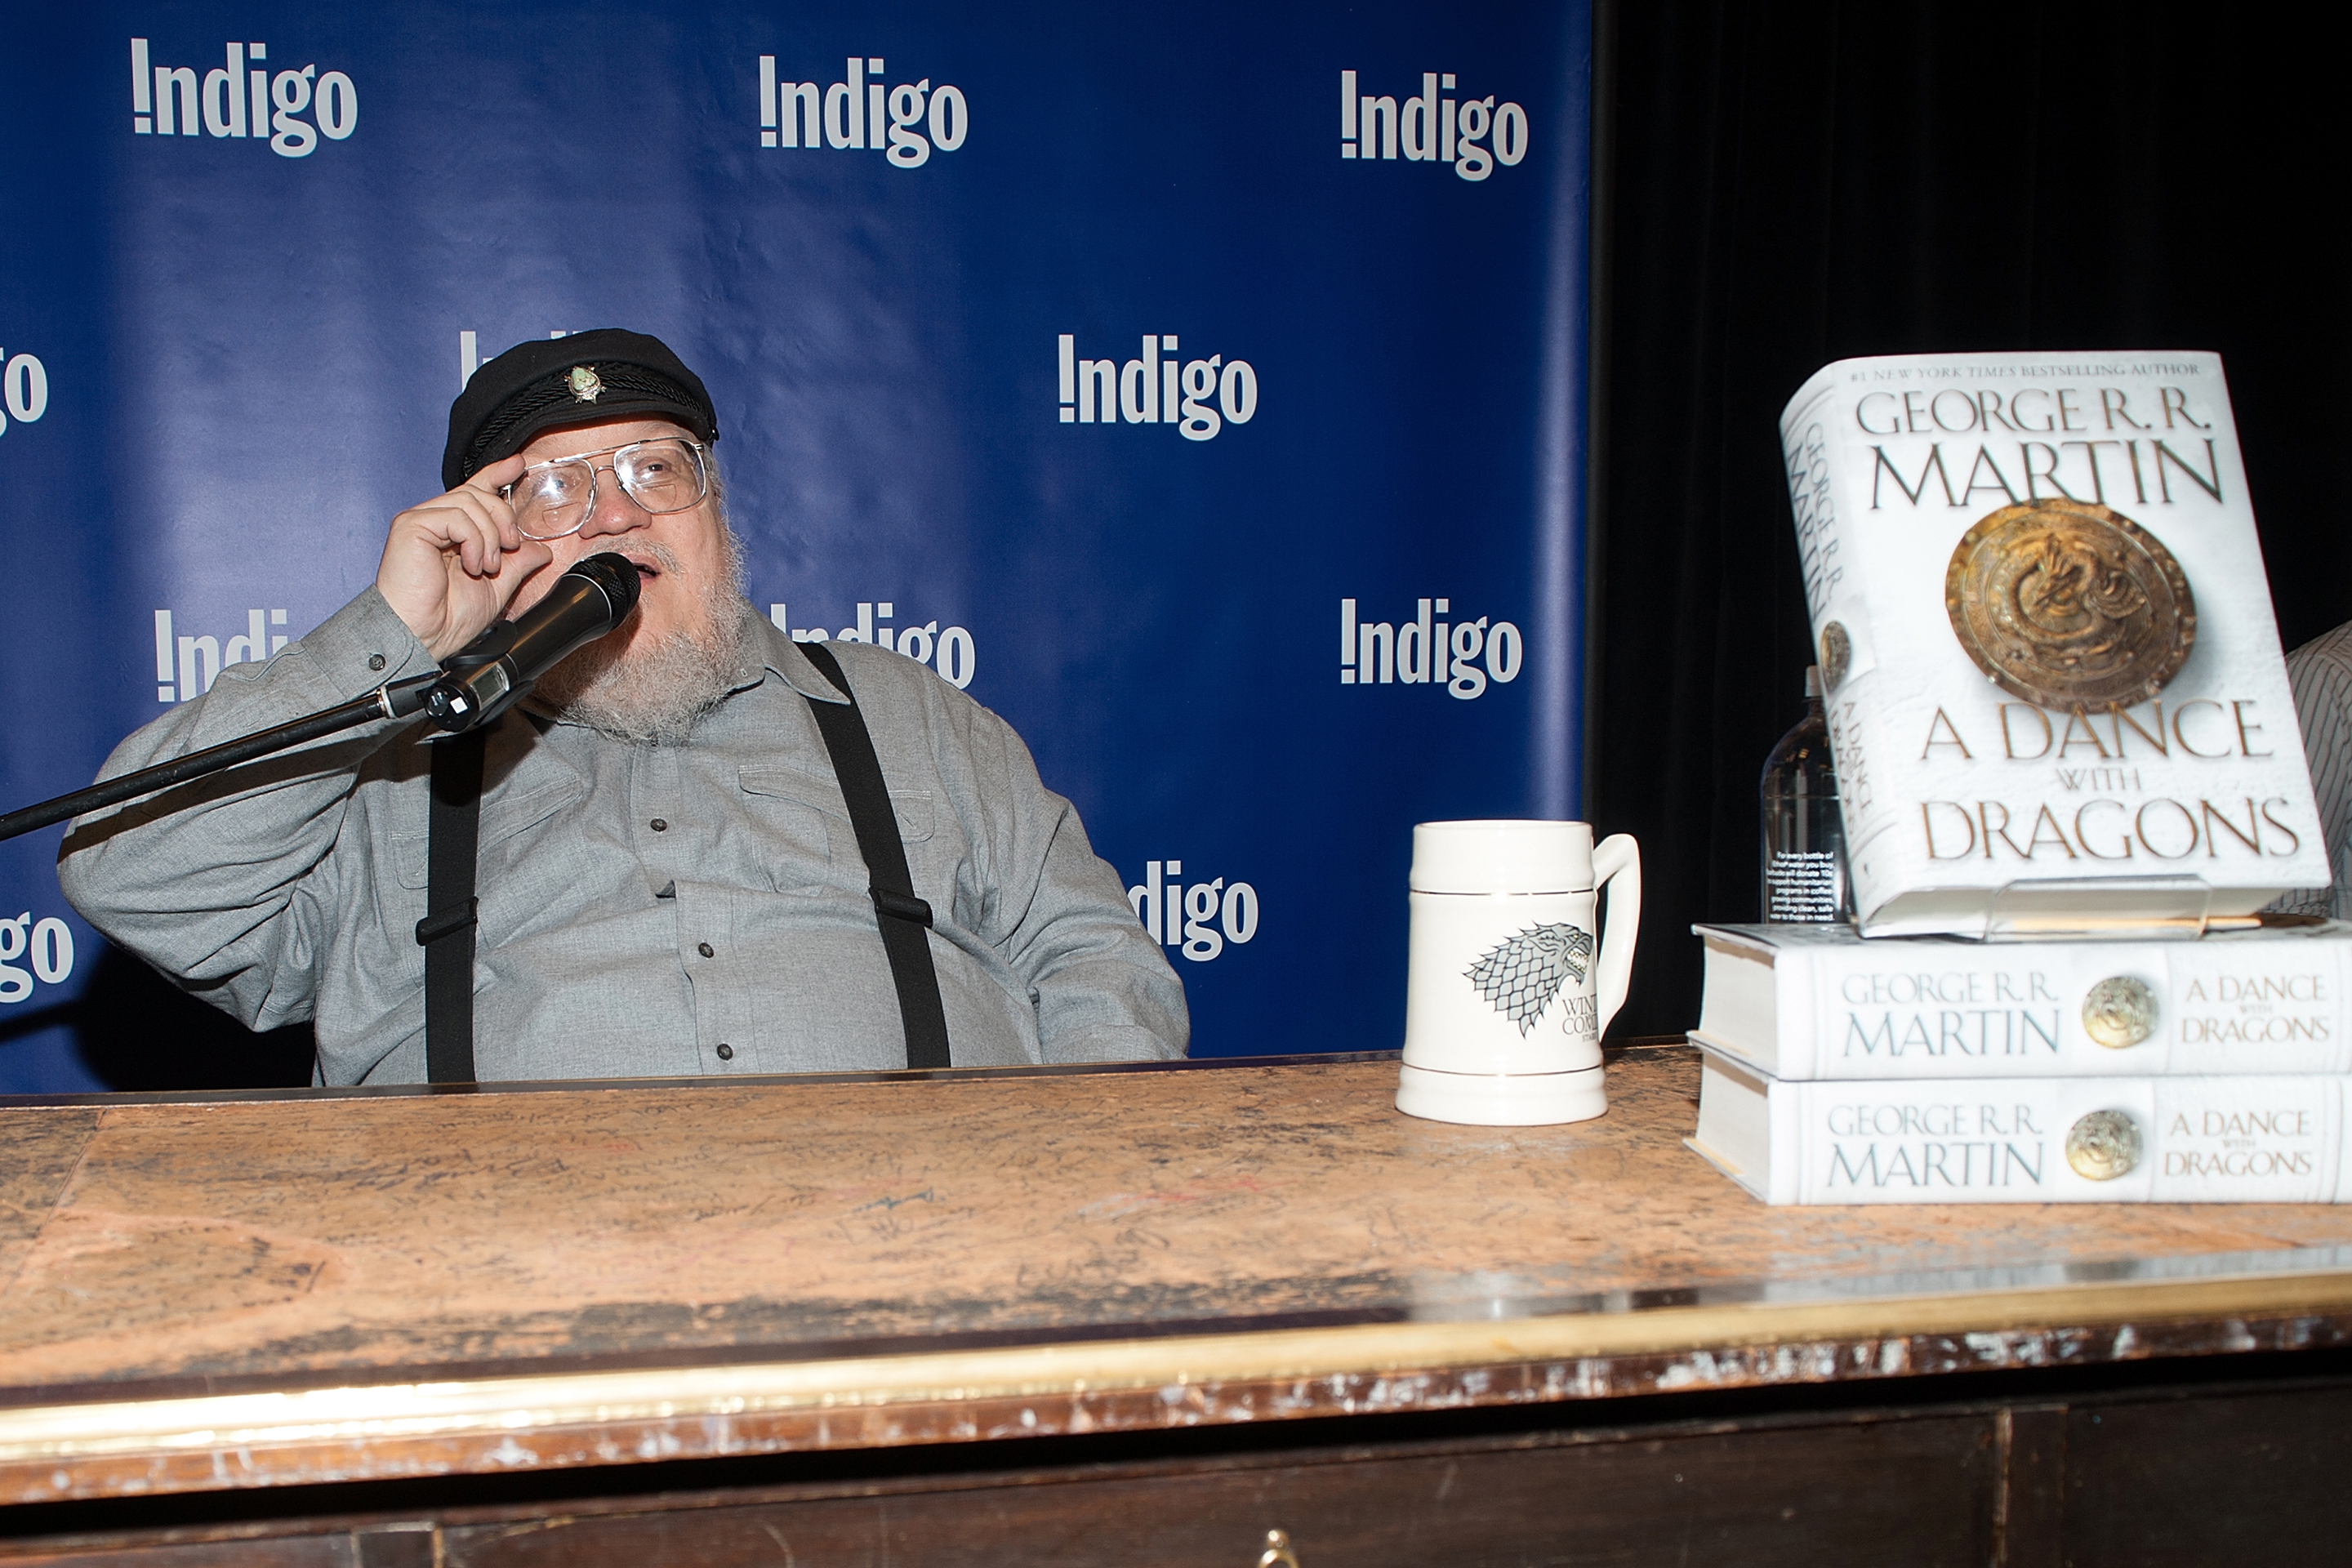 """George R.R. Martin Signs Copies Of His New Book """"A Dance With Dragons"""""""